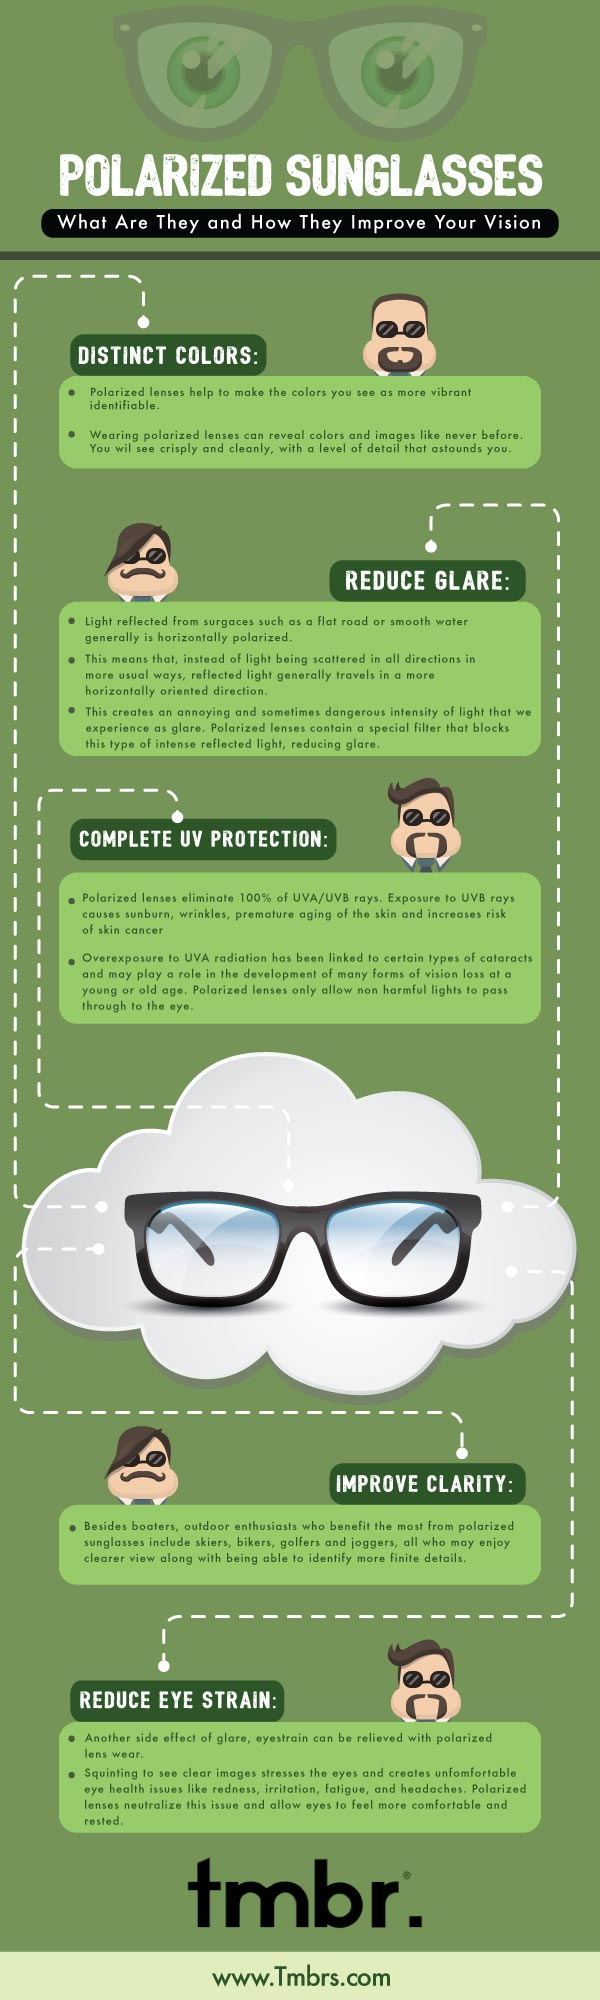 Polarized Sunglasses Infographic